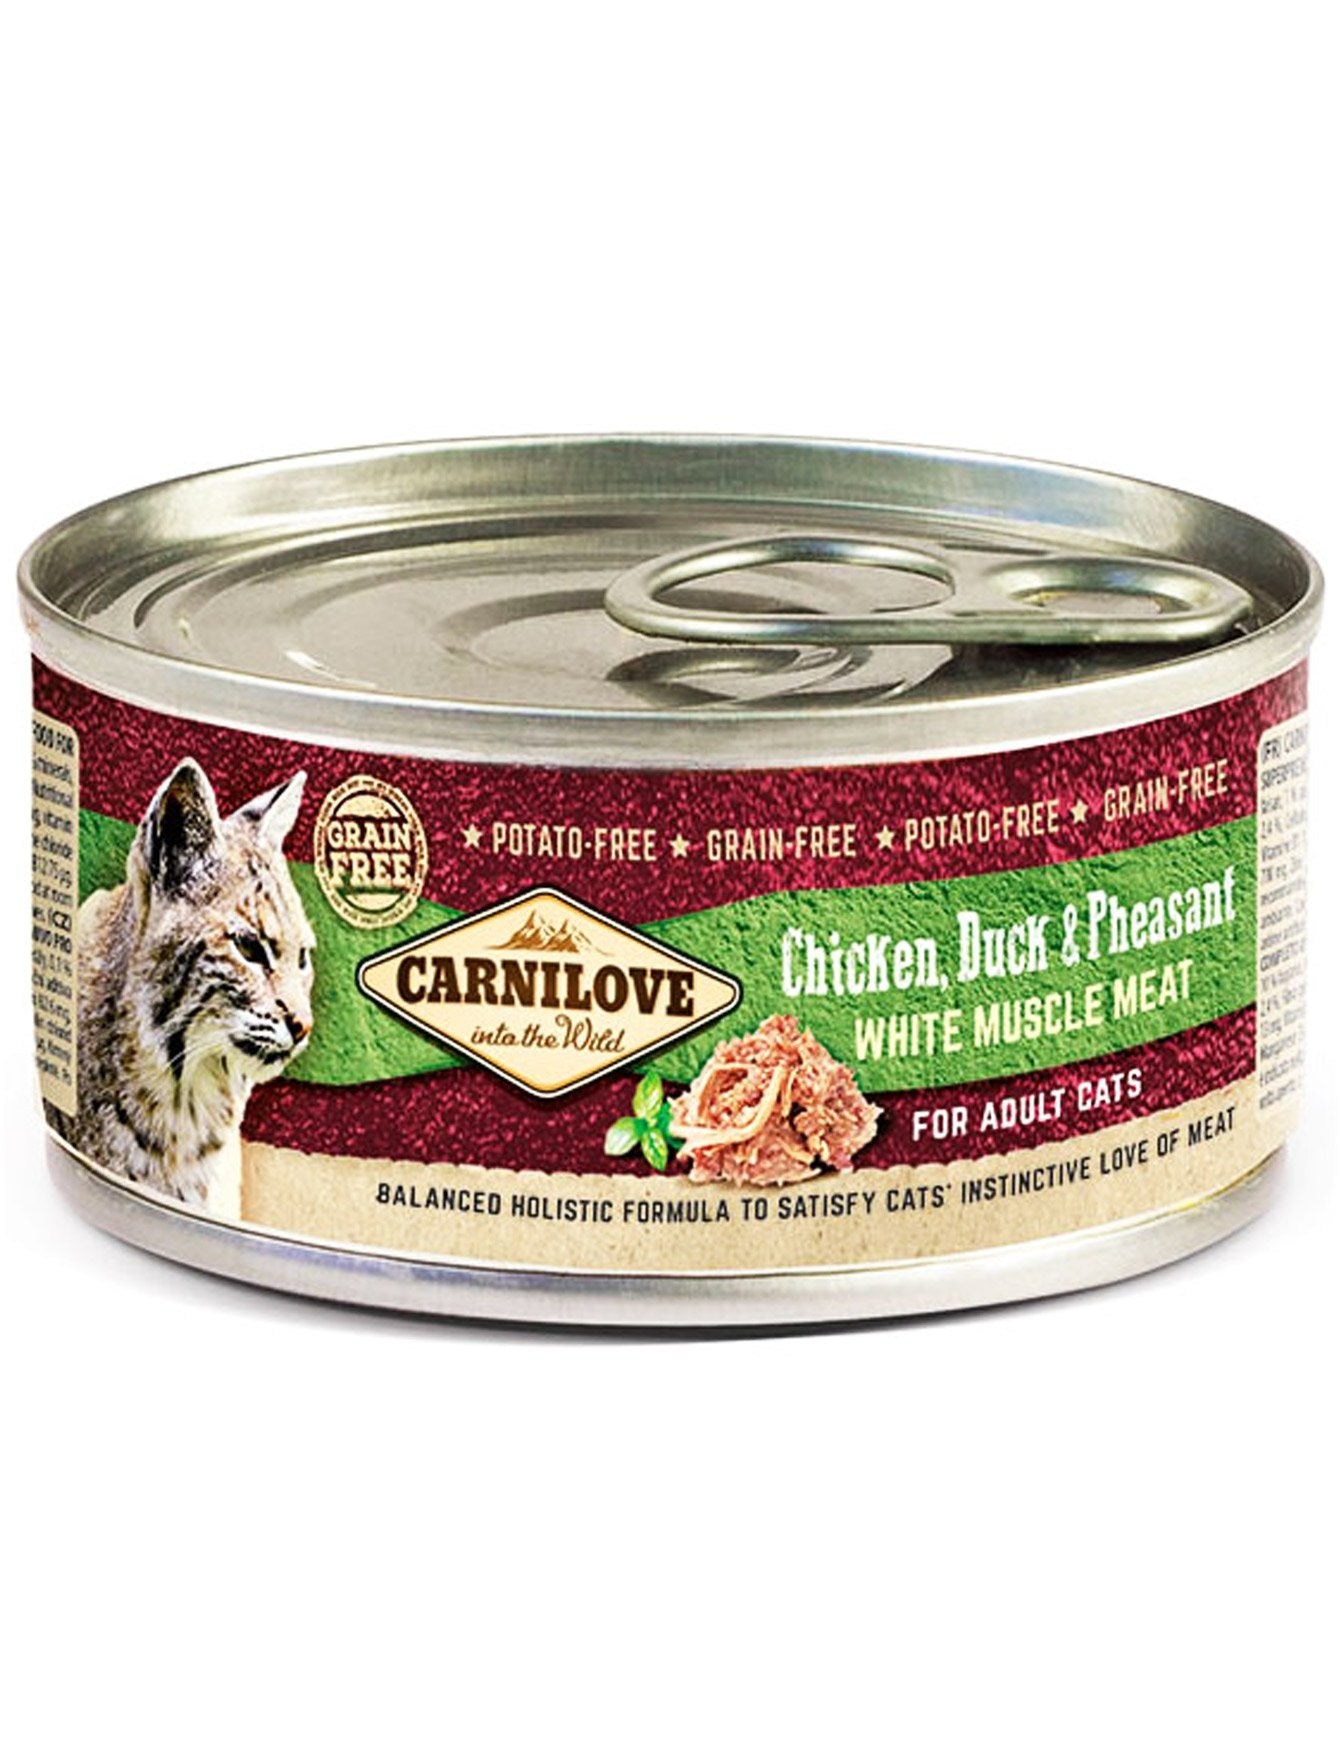 Carnilove Chicken, Duck & Pheasant Wet Cat Food 100g| Waggymeal Online Pet Store Malaysia